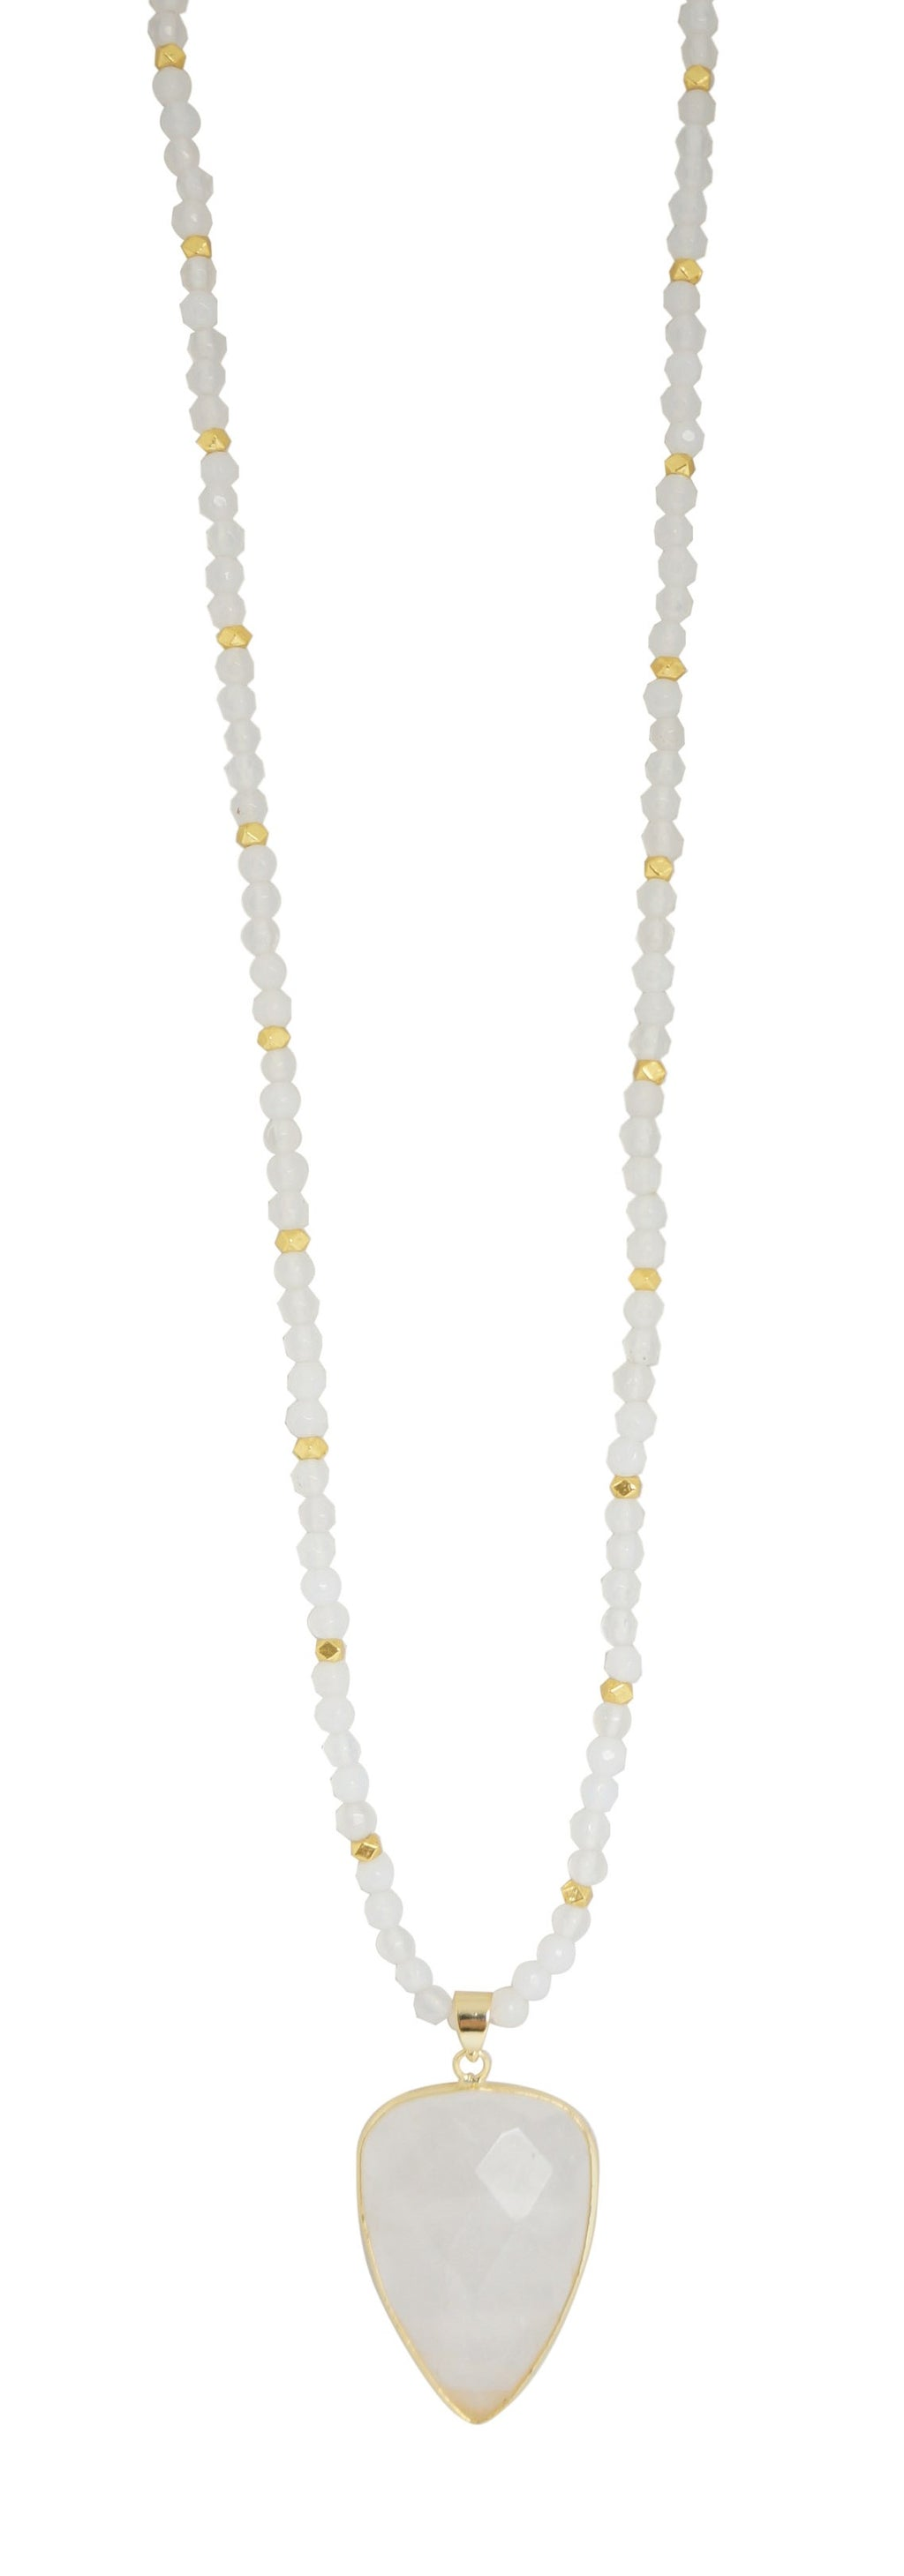 Reflection Necklace - Carolyn Hearn Designs